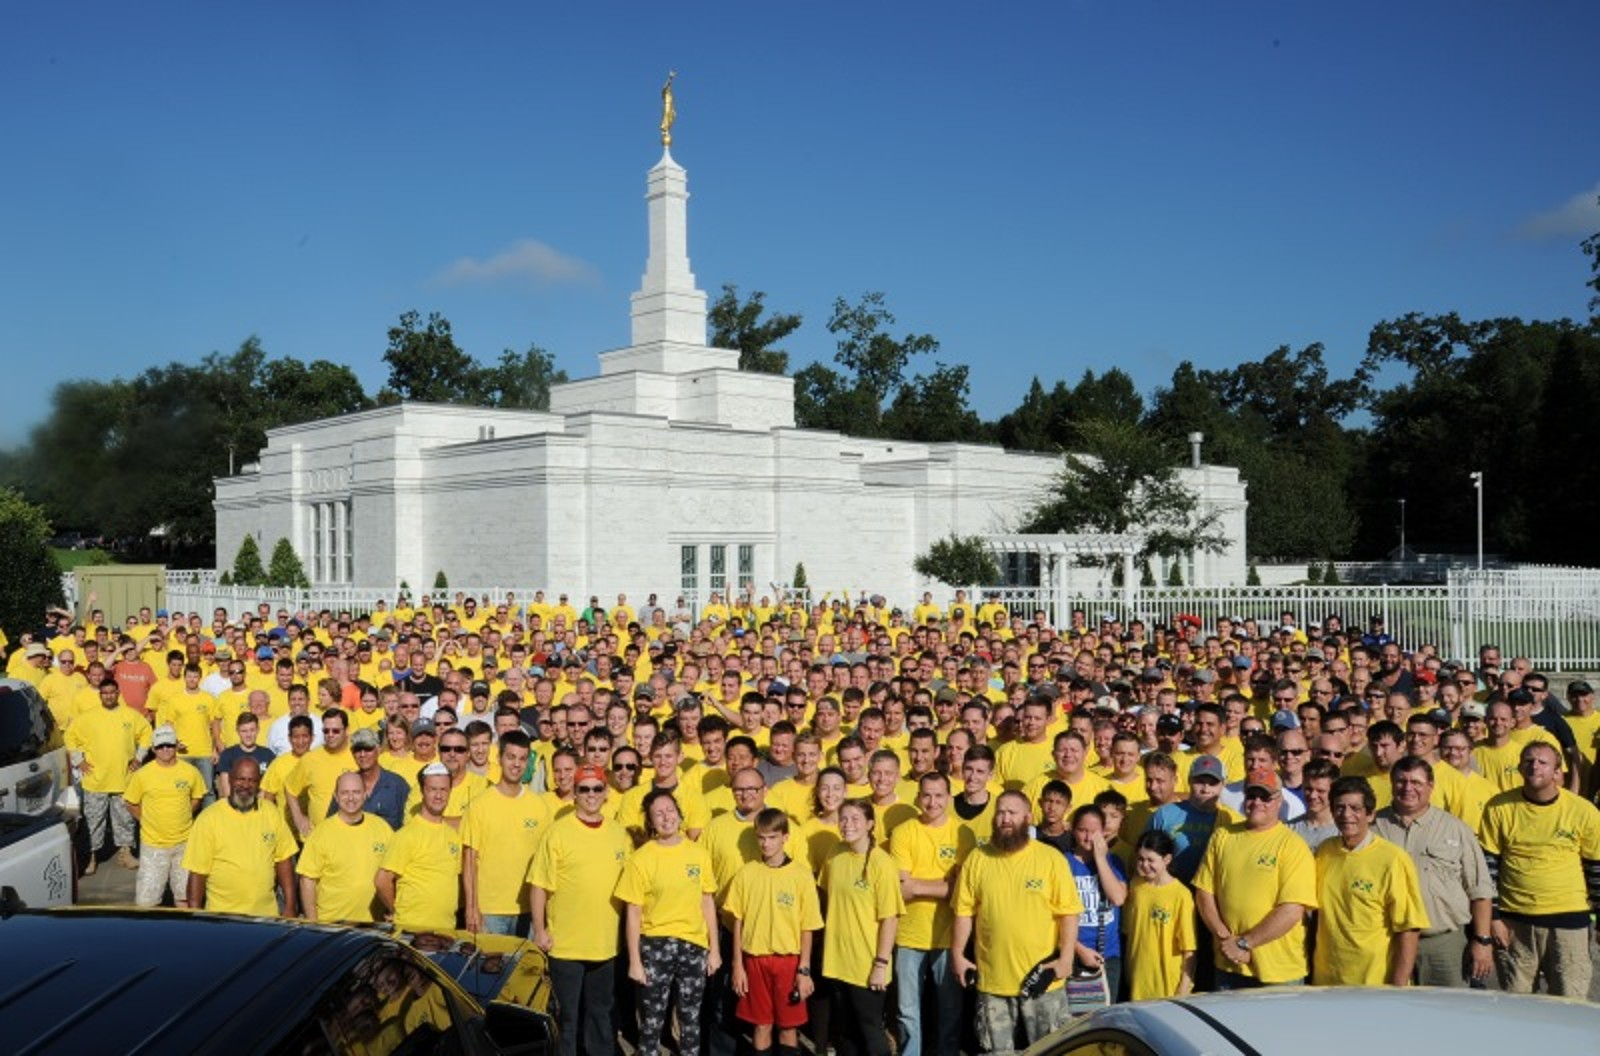 A group of about 350 is a small part of the over 4,300 MHH volunteers that arrived for a weekend clean-up project in 2016. The Baton Rouge Louisiana Temple is in the background.